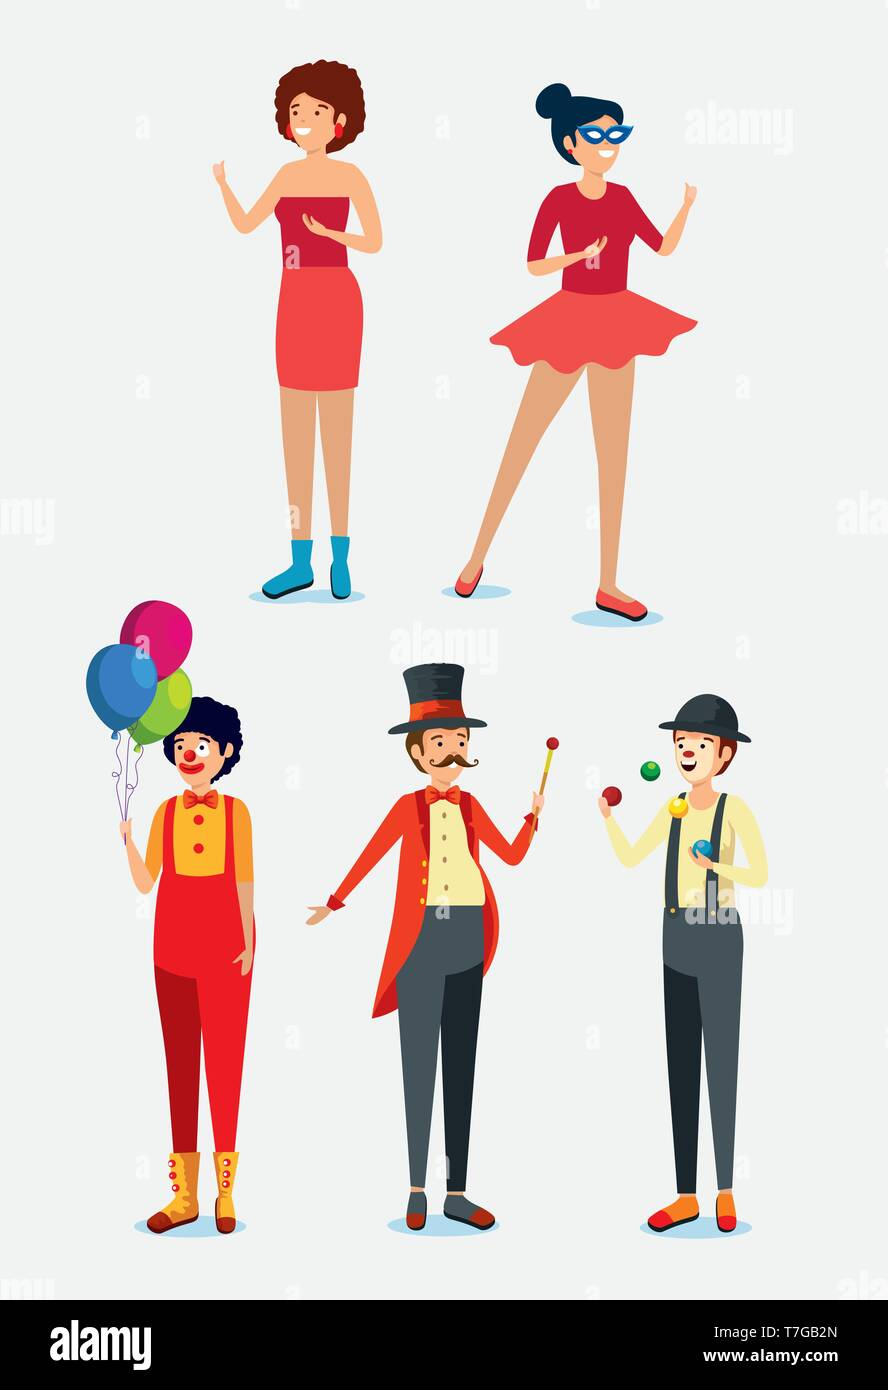 set women and men with festival traditional costume - Stock Image